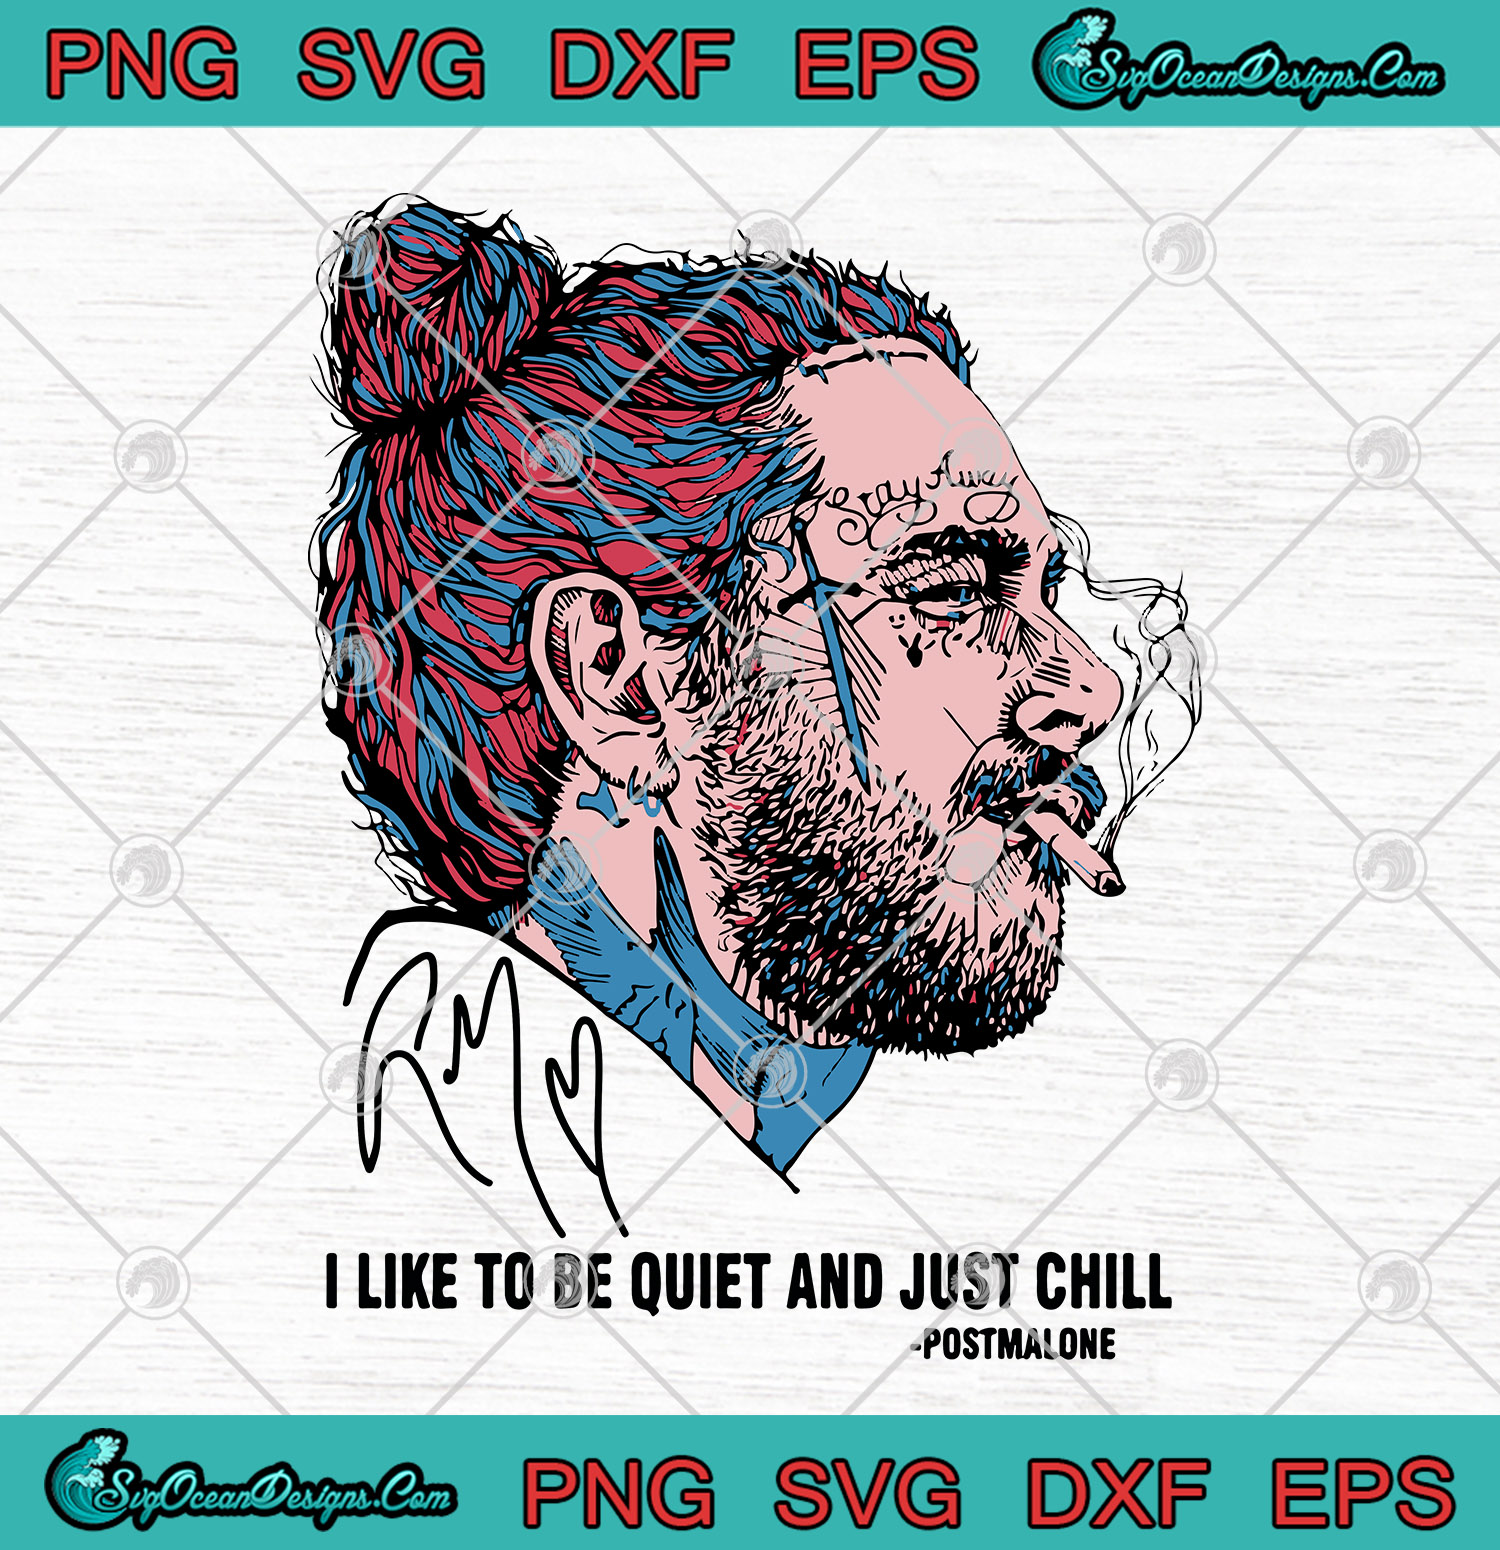 Post Malone Smoking I Like To Be Quiet And Just Chill Svg Png Dxf Eps Post Malone Svg Png Cutting File Cricut Silhouette Art Designs Digital Download